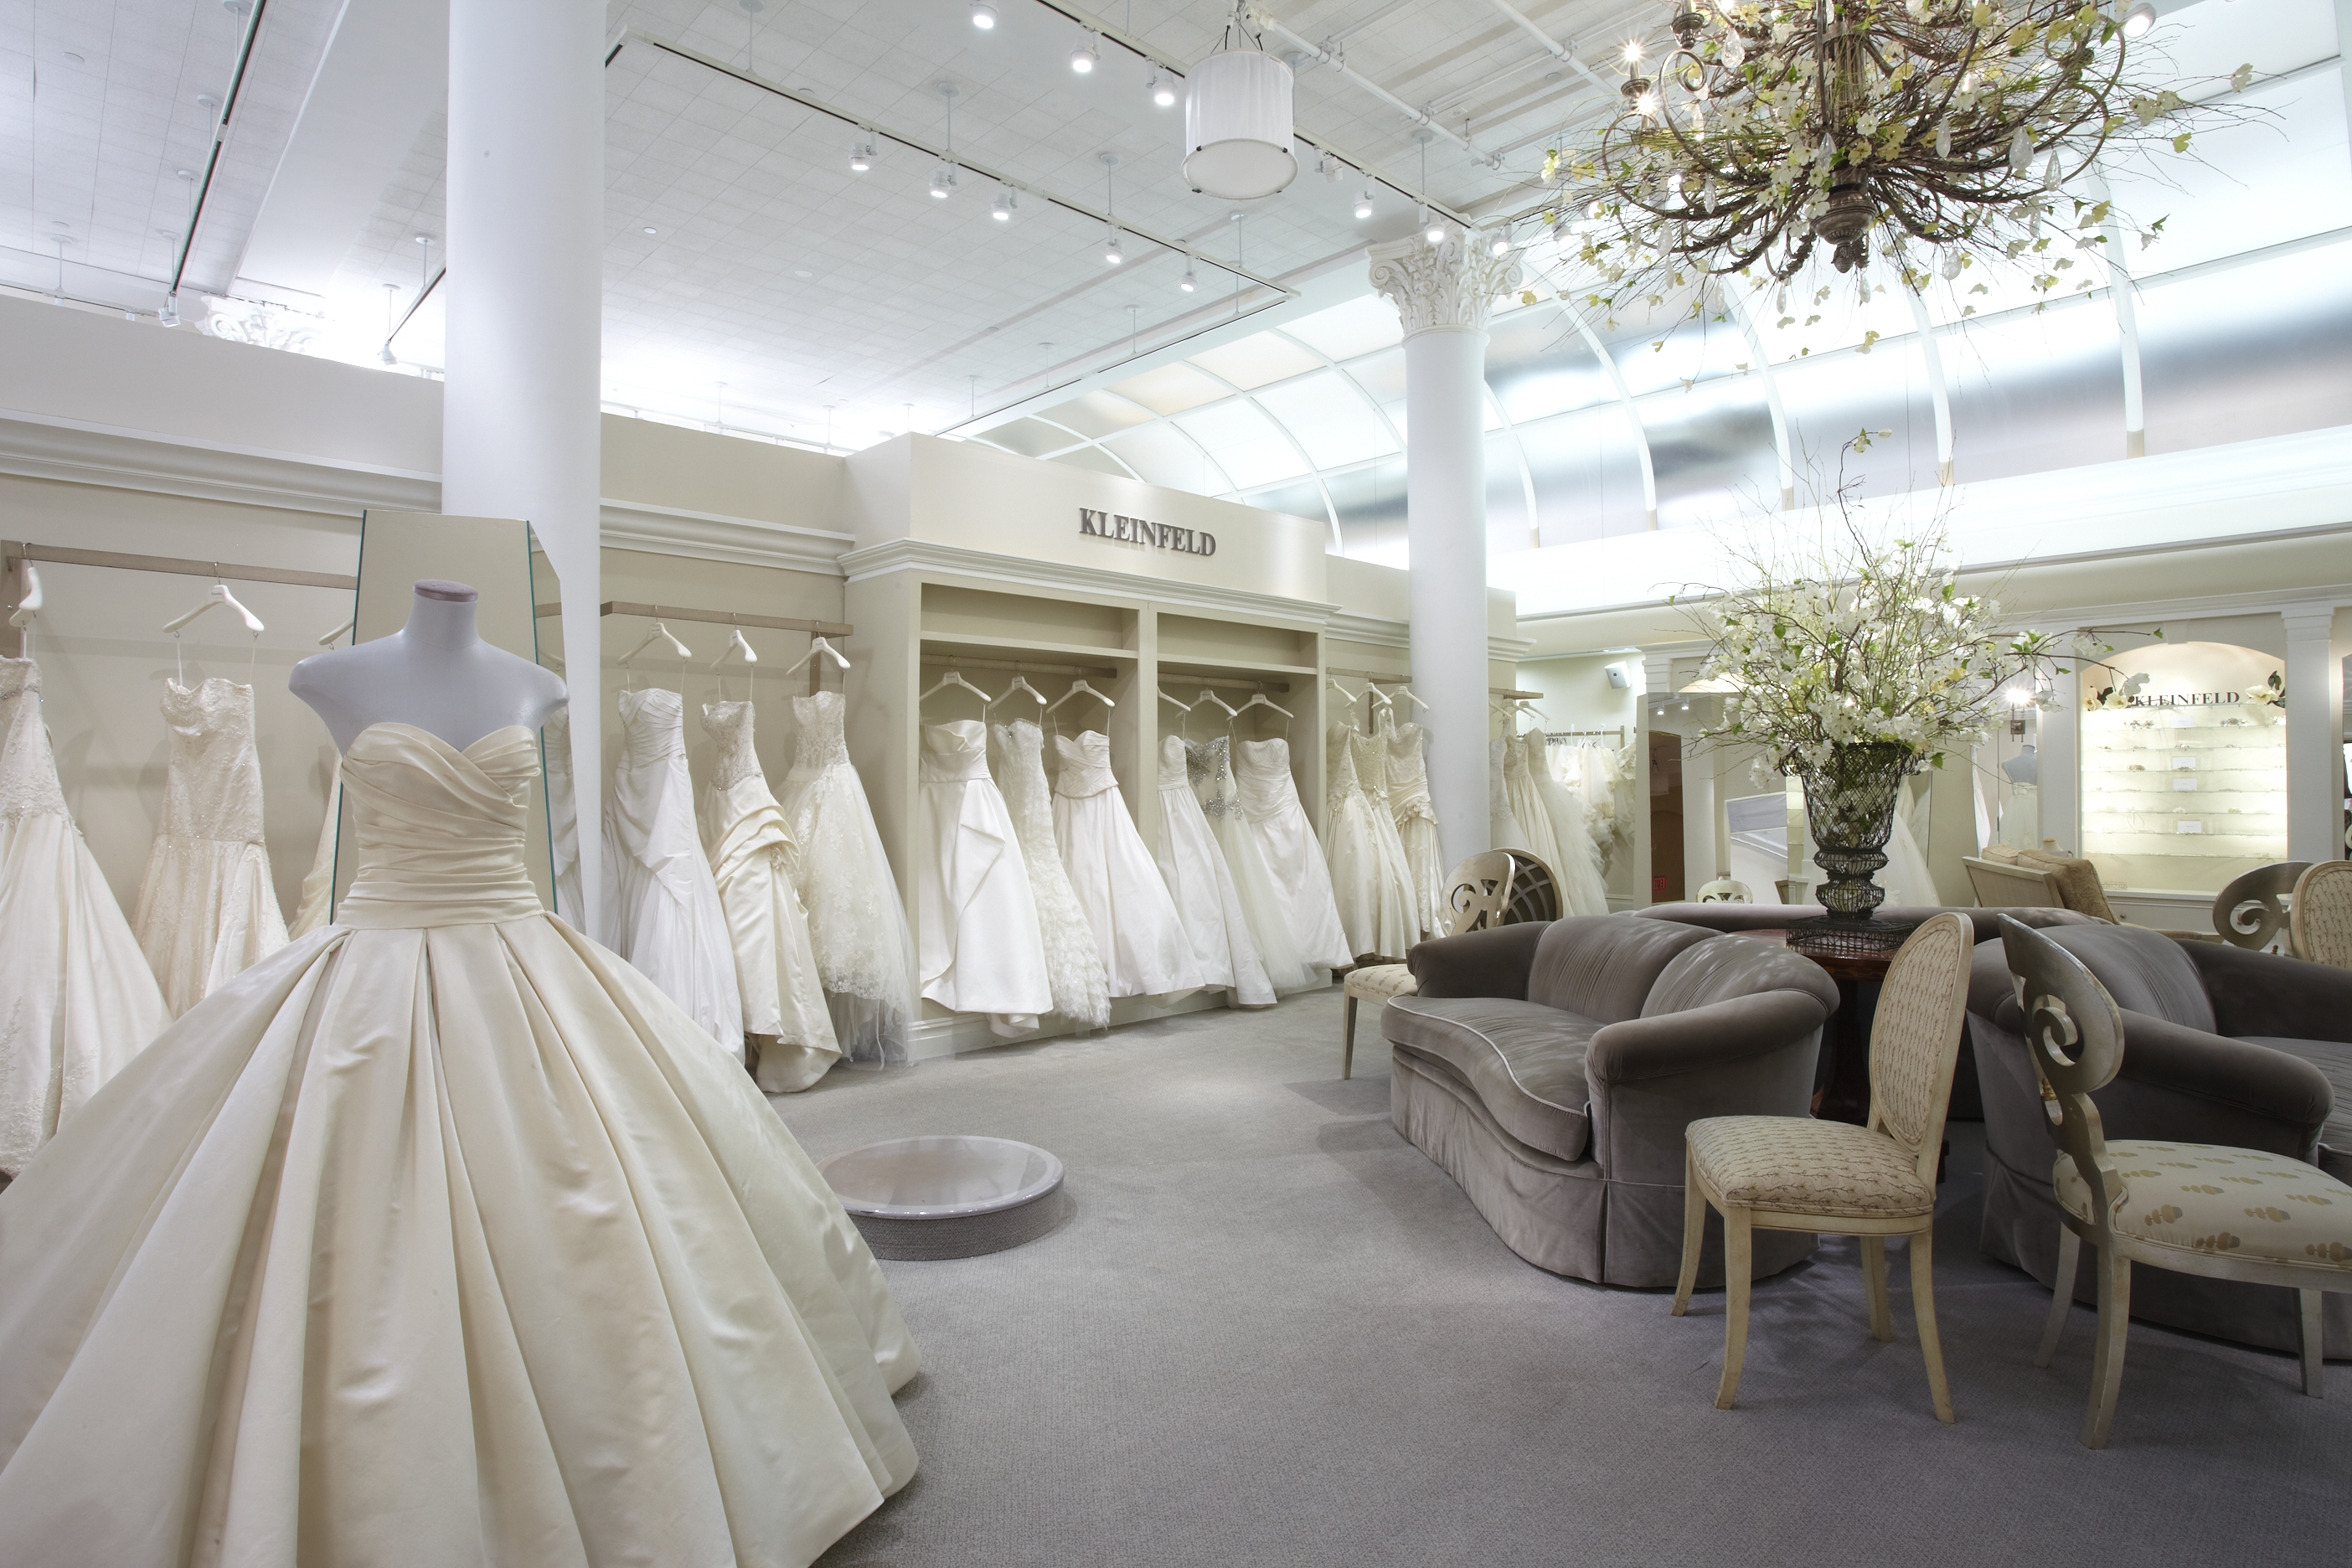 Kleinfeld main bridal salon